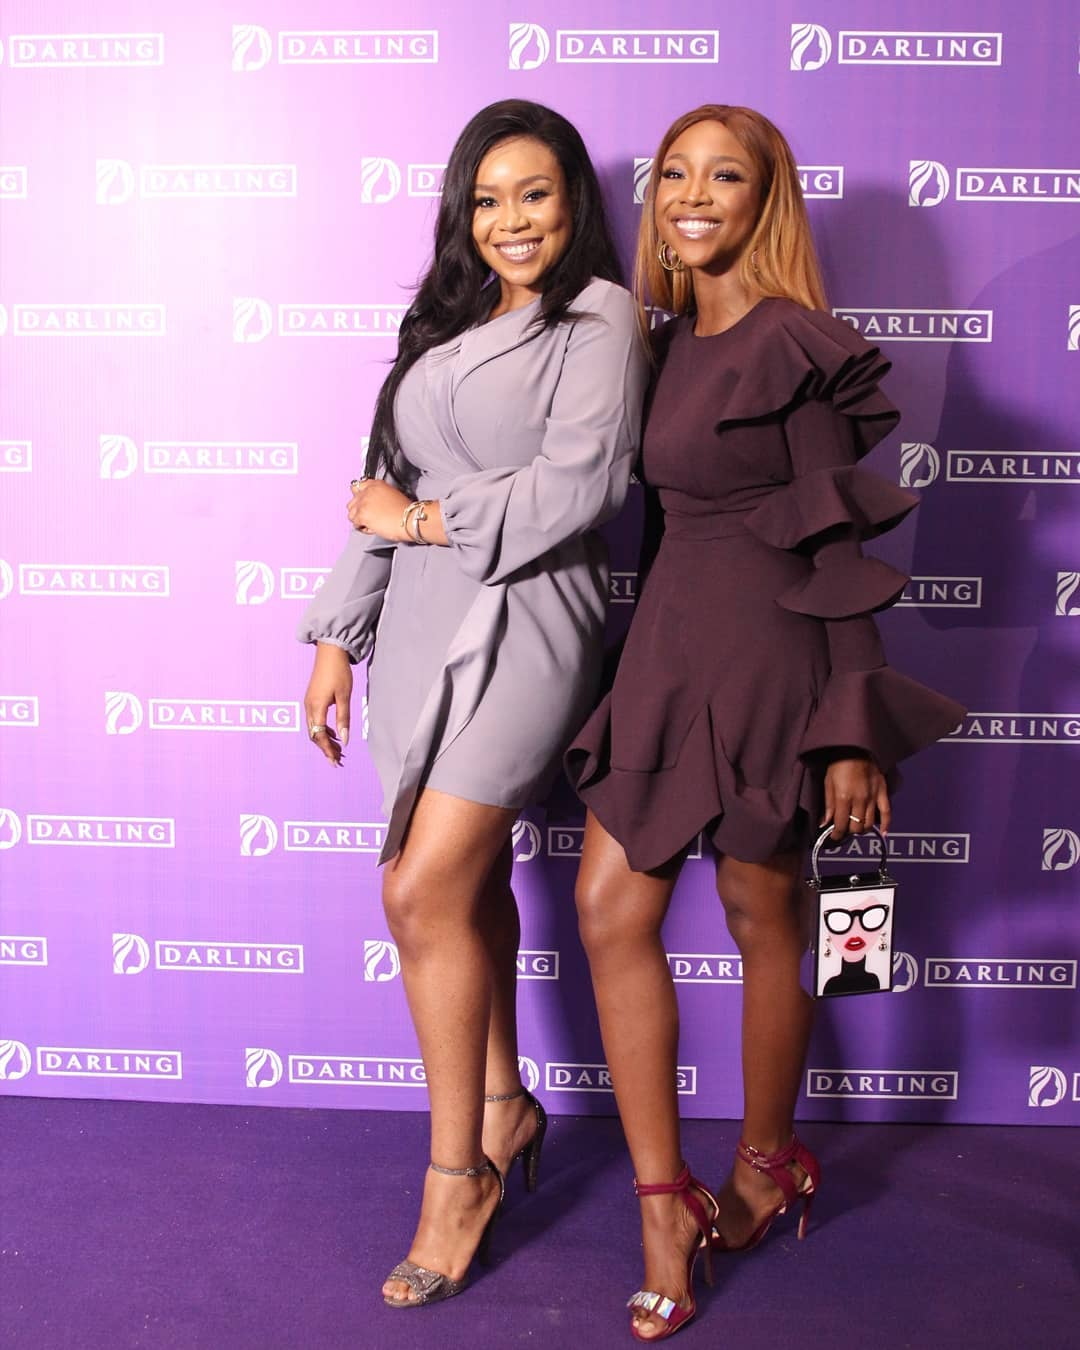 Inside the fabulous Darling Nigeria Relaunch Event at Lagos